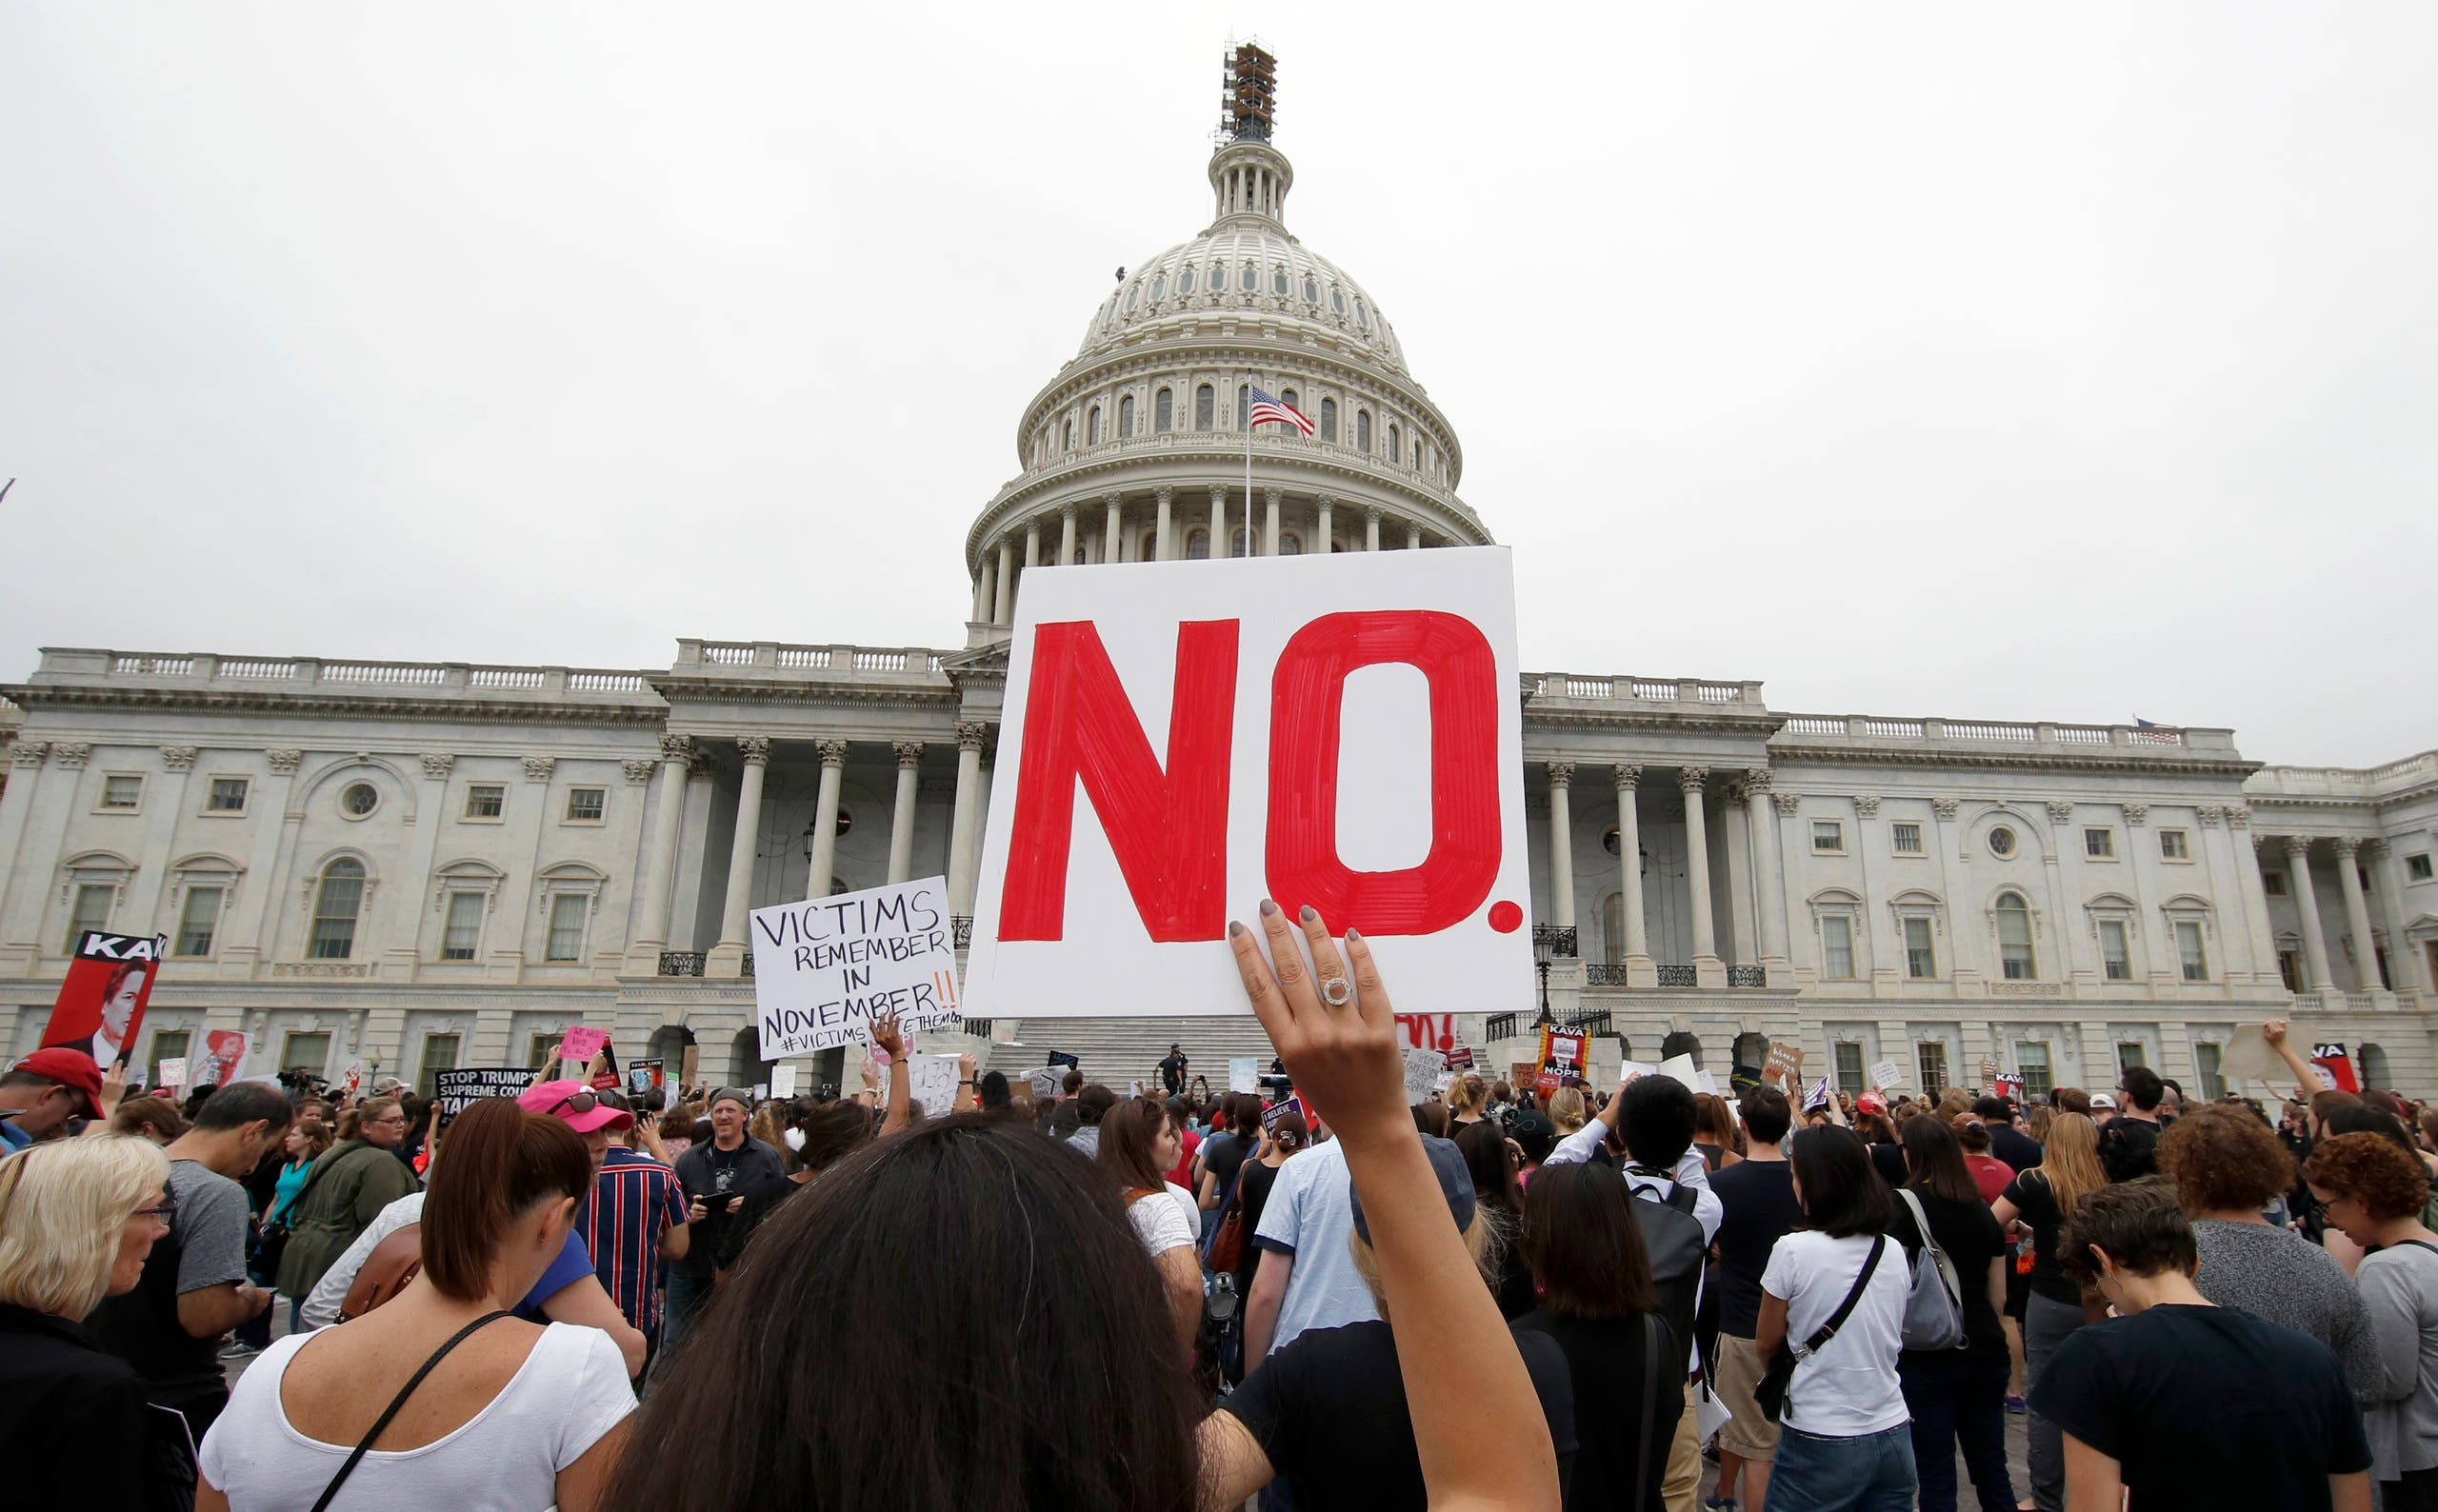 Activists demonstrate in the plaza of the East Front of the US Capitol to protest the confirmation vote of Supreme Court nominee Brett Kavanaugh on Oct. 6, 2018. (AP )